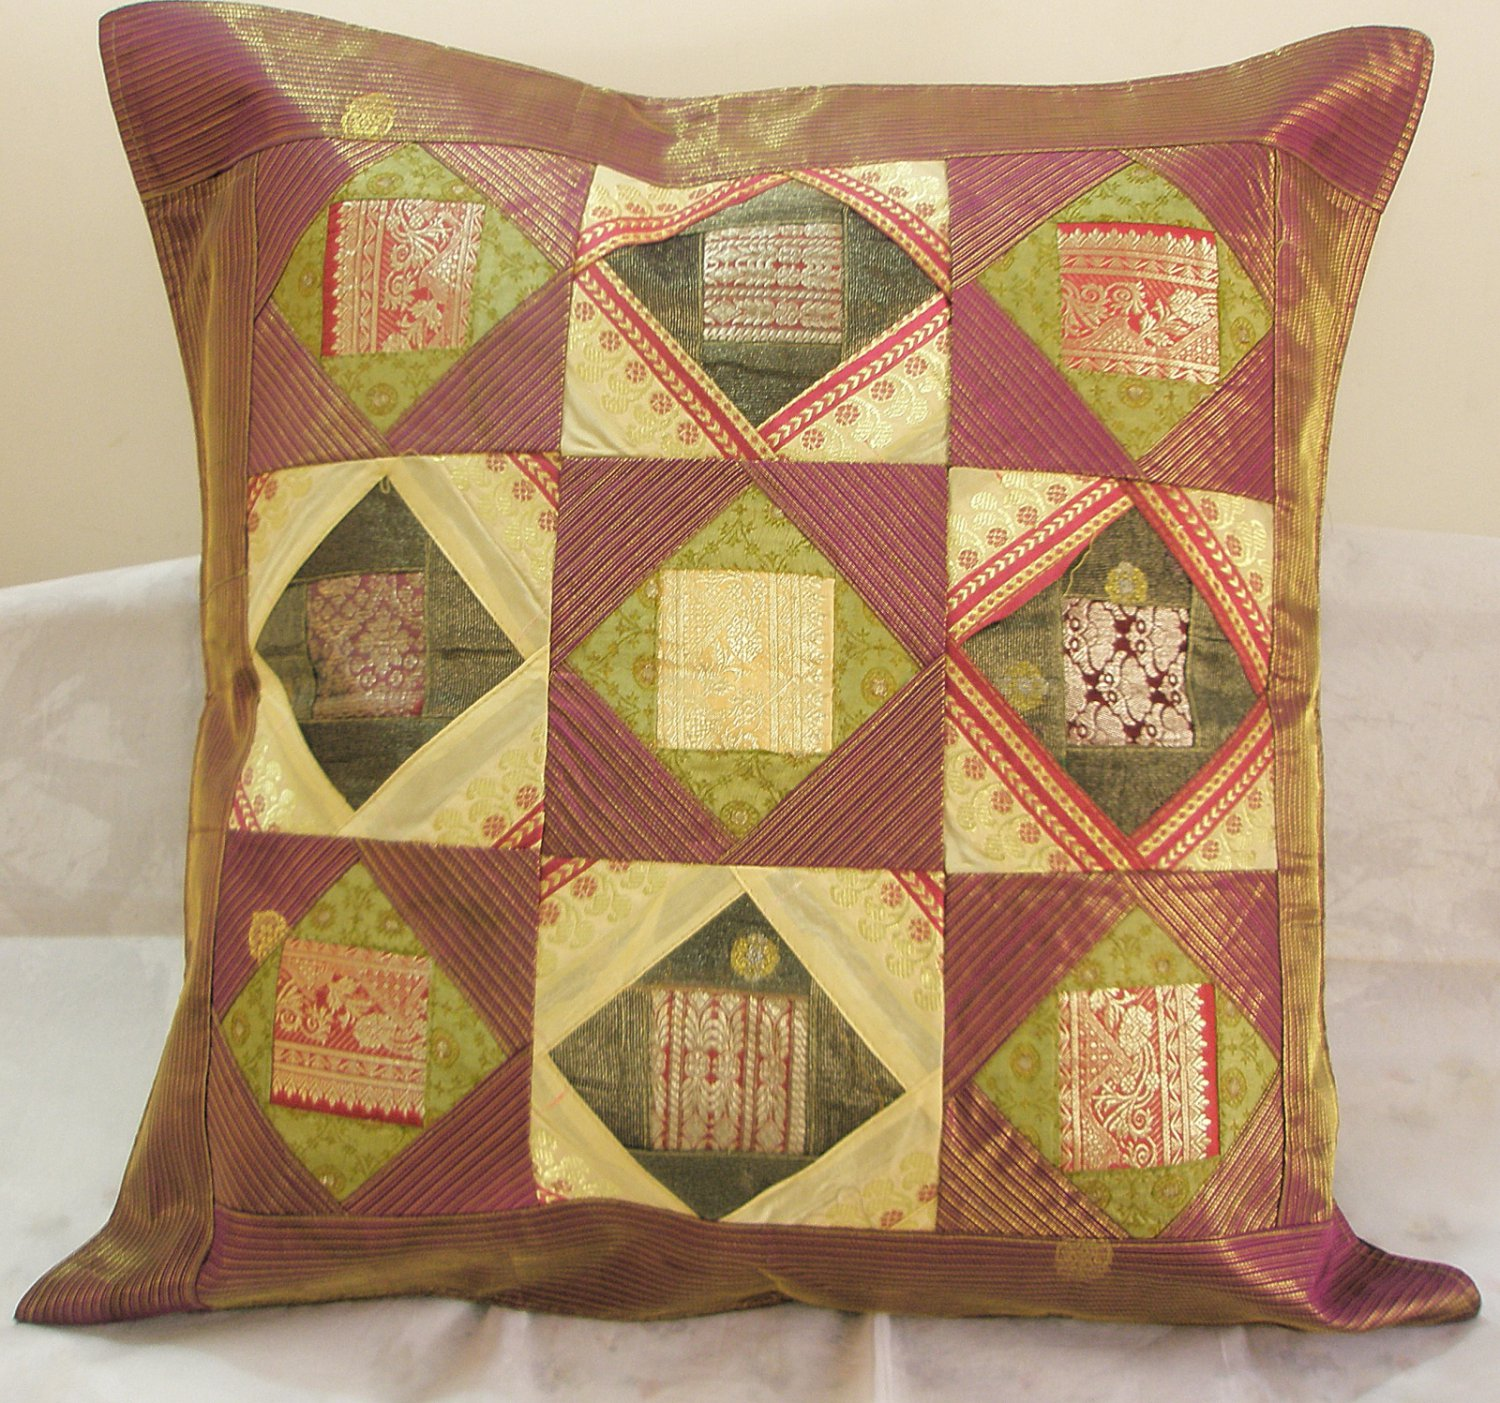 24 Inch Extra Large Ethnic Patchwork Indian Cushion Pillow Covers